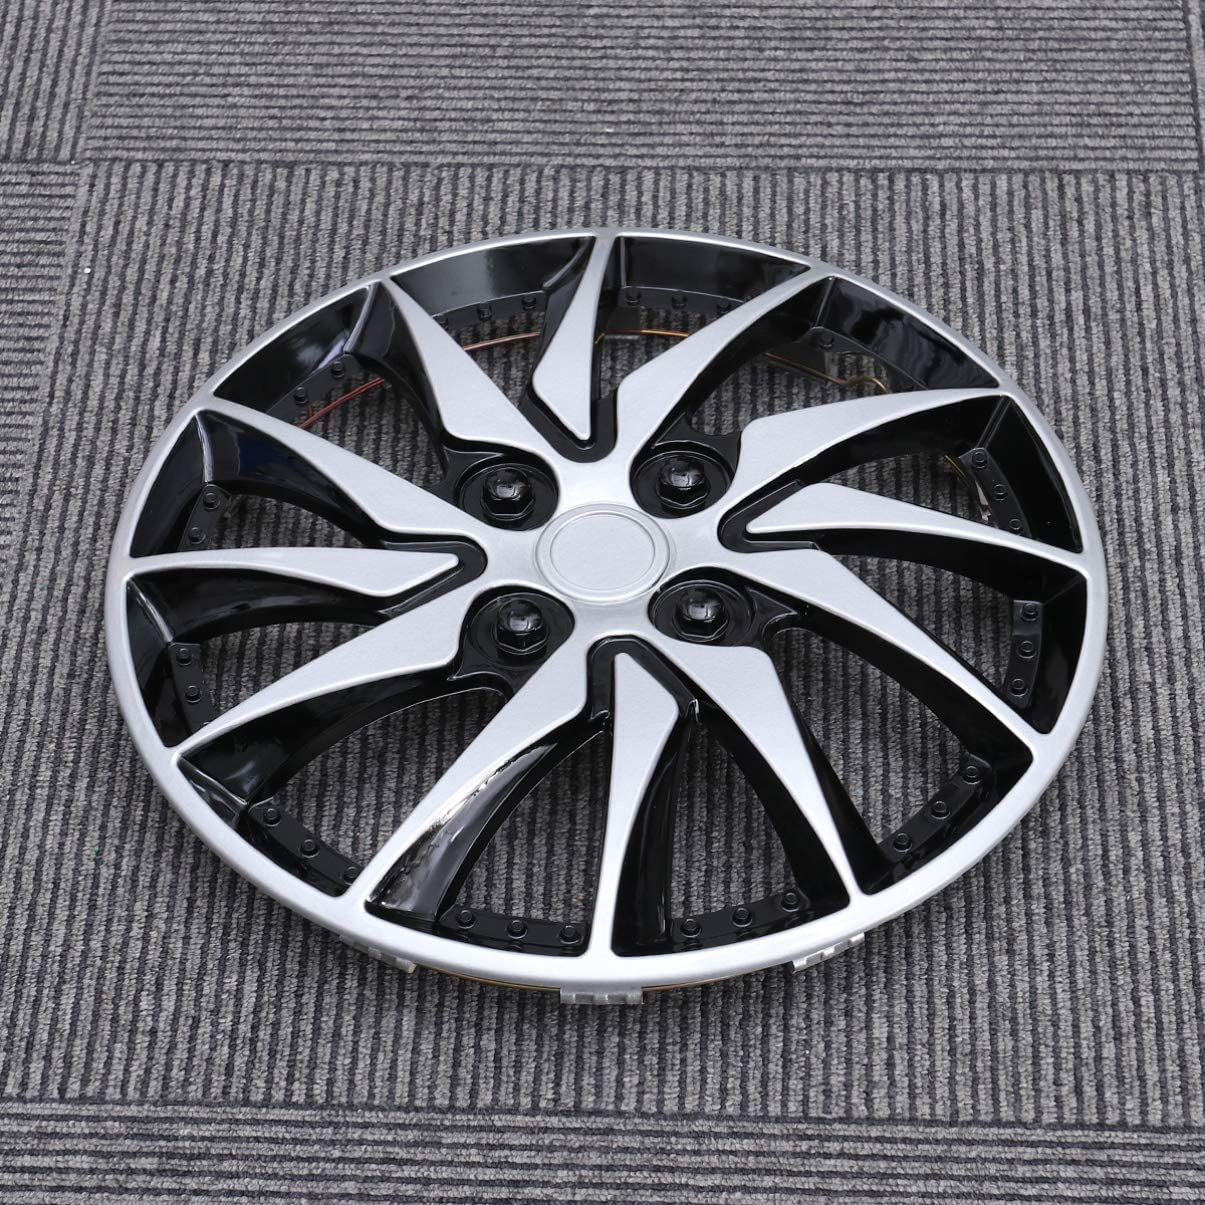 CLISPEED Hubcaps Wheel Covers 14 Inch Hub Caps Wheels Rim Cover for Car Auto Vehicle Tire Parts Replacement Supplies